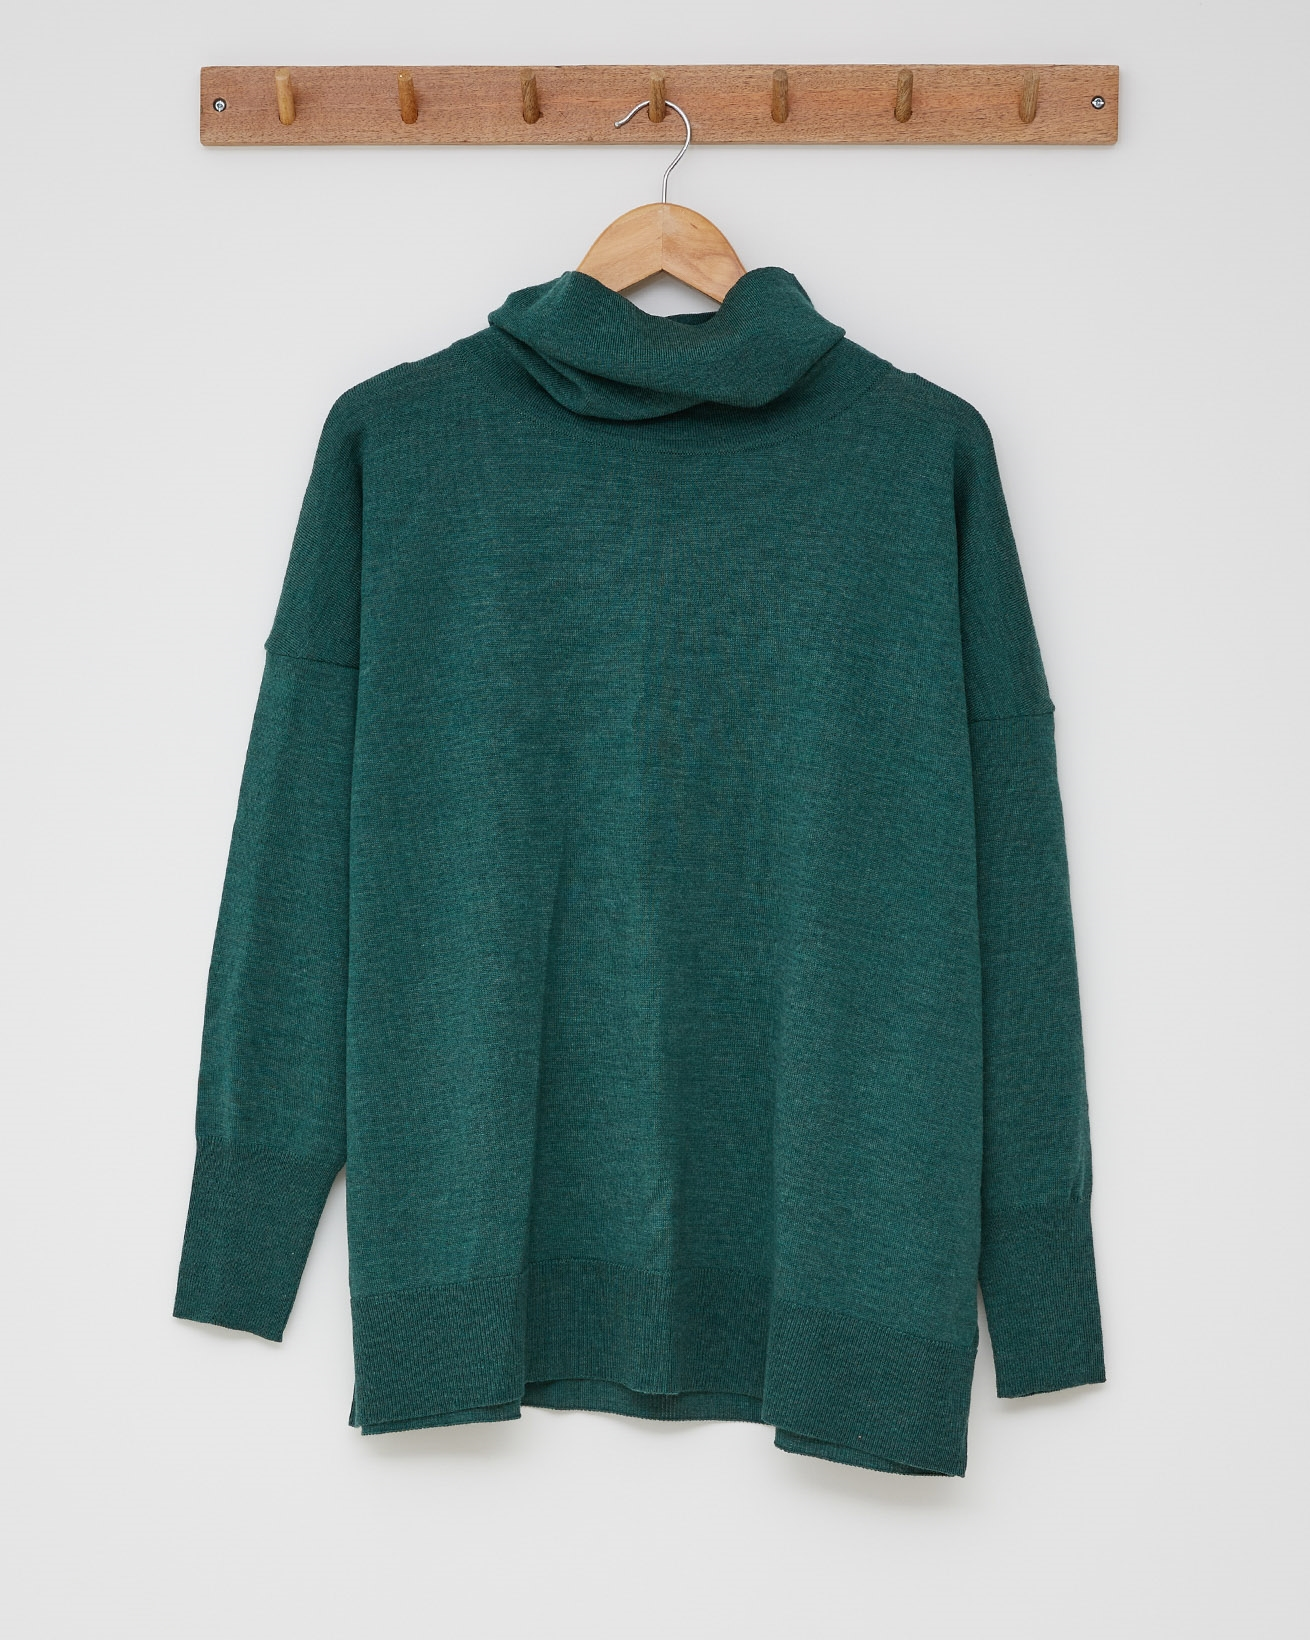 Slouchy Fine Knit Roll Neck Jumper - Size Small -  Sea green - 2428